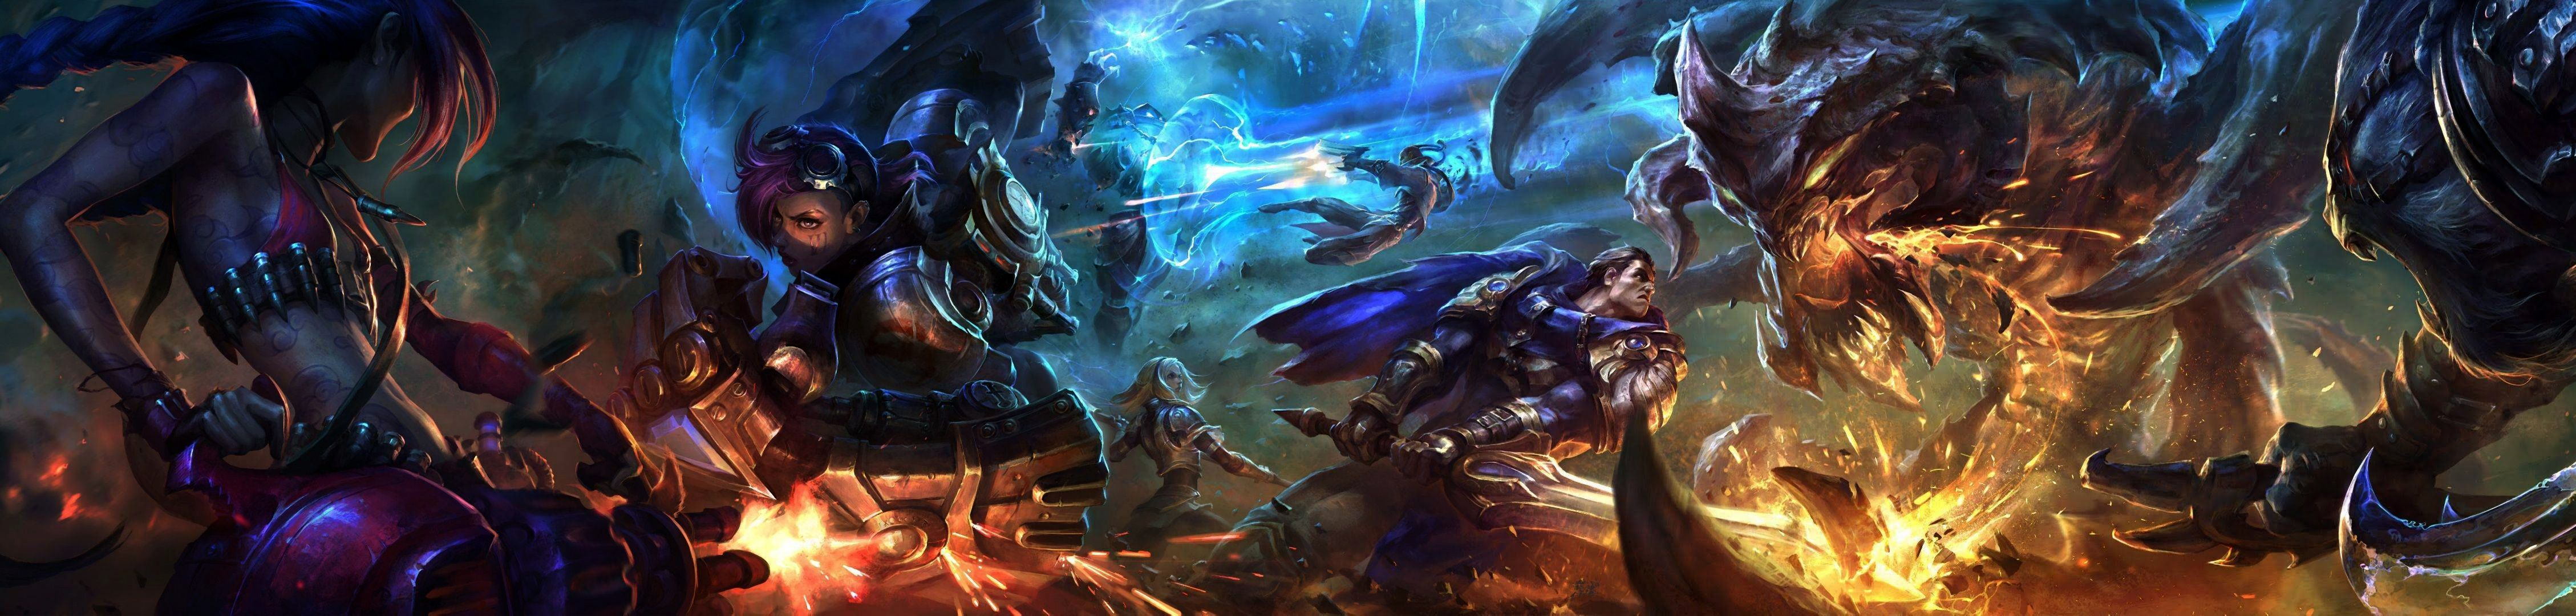 League Of Legends Dual Screen Wallpapers Top Free League Of